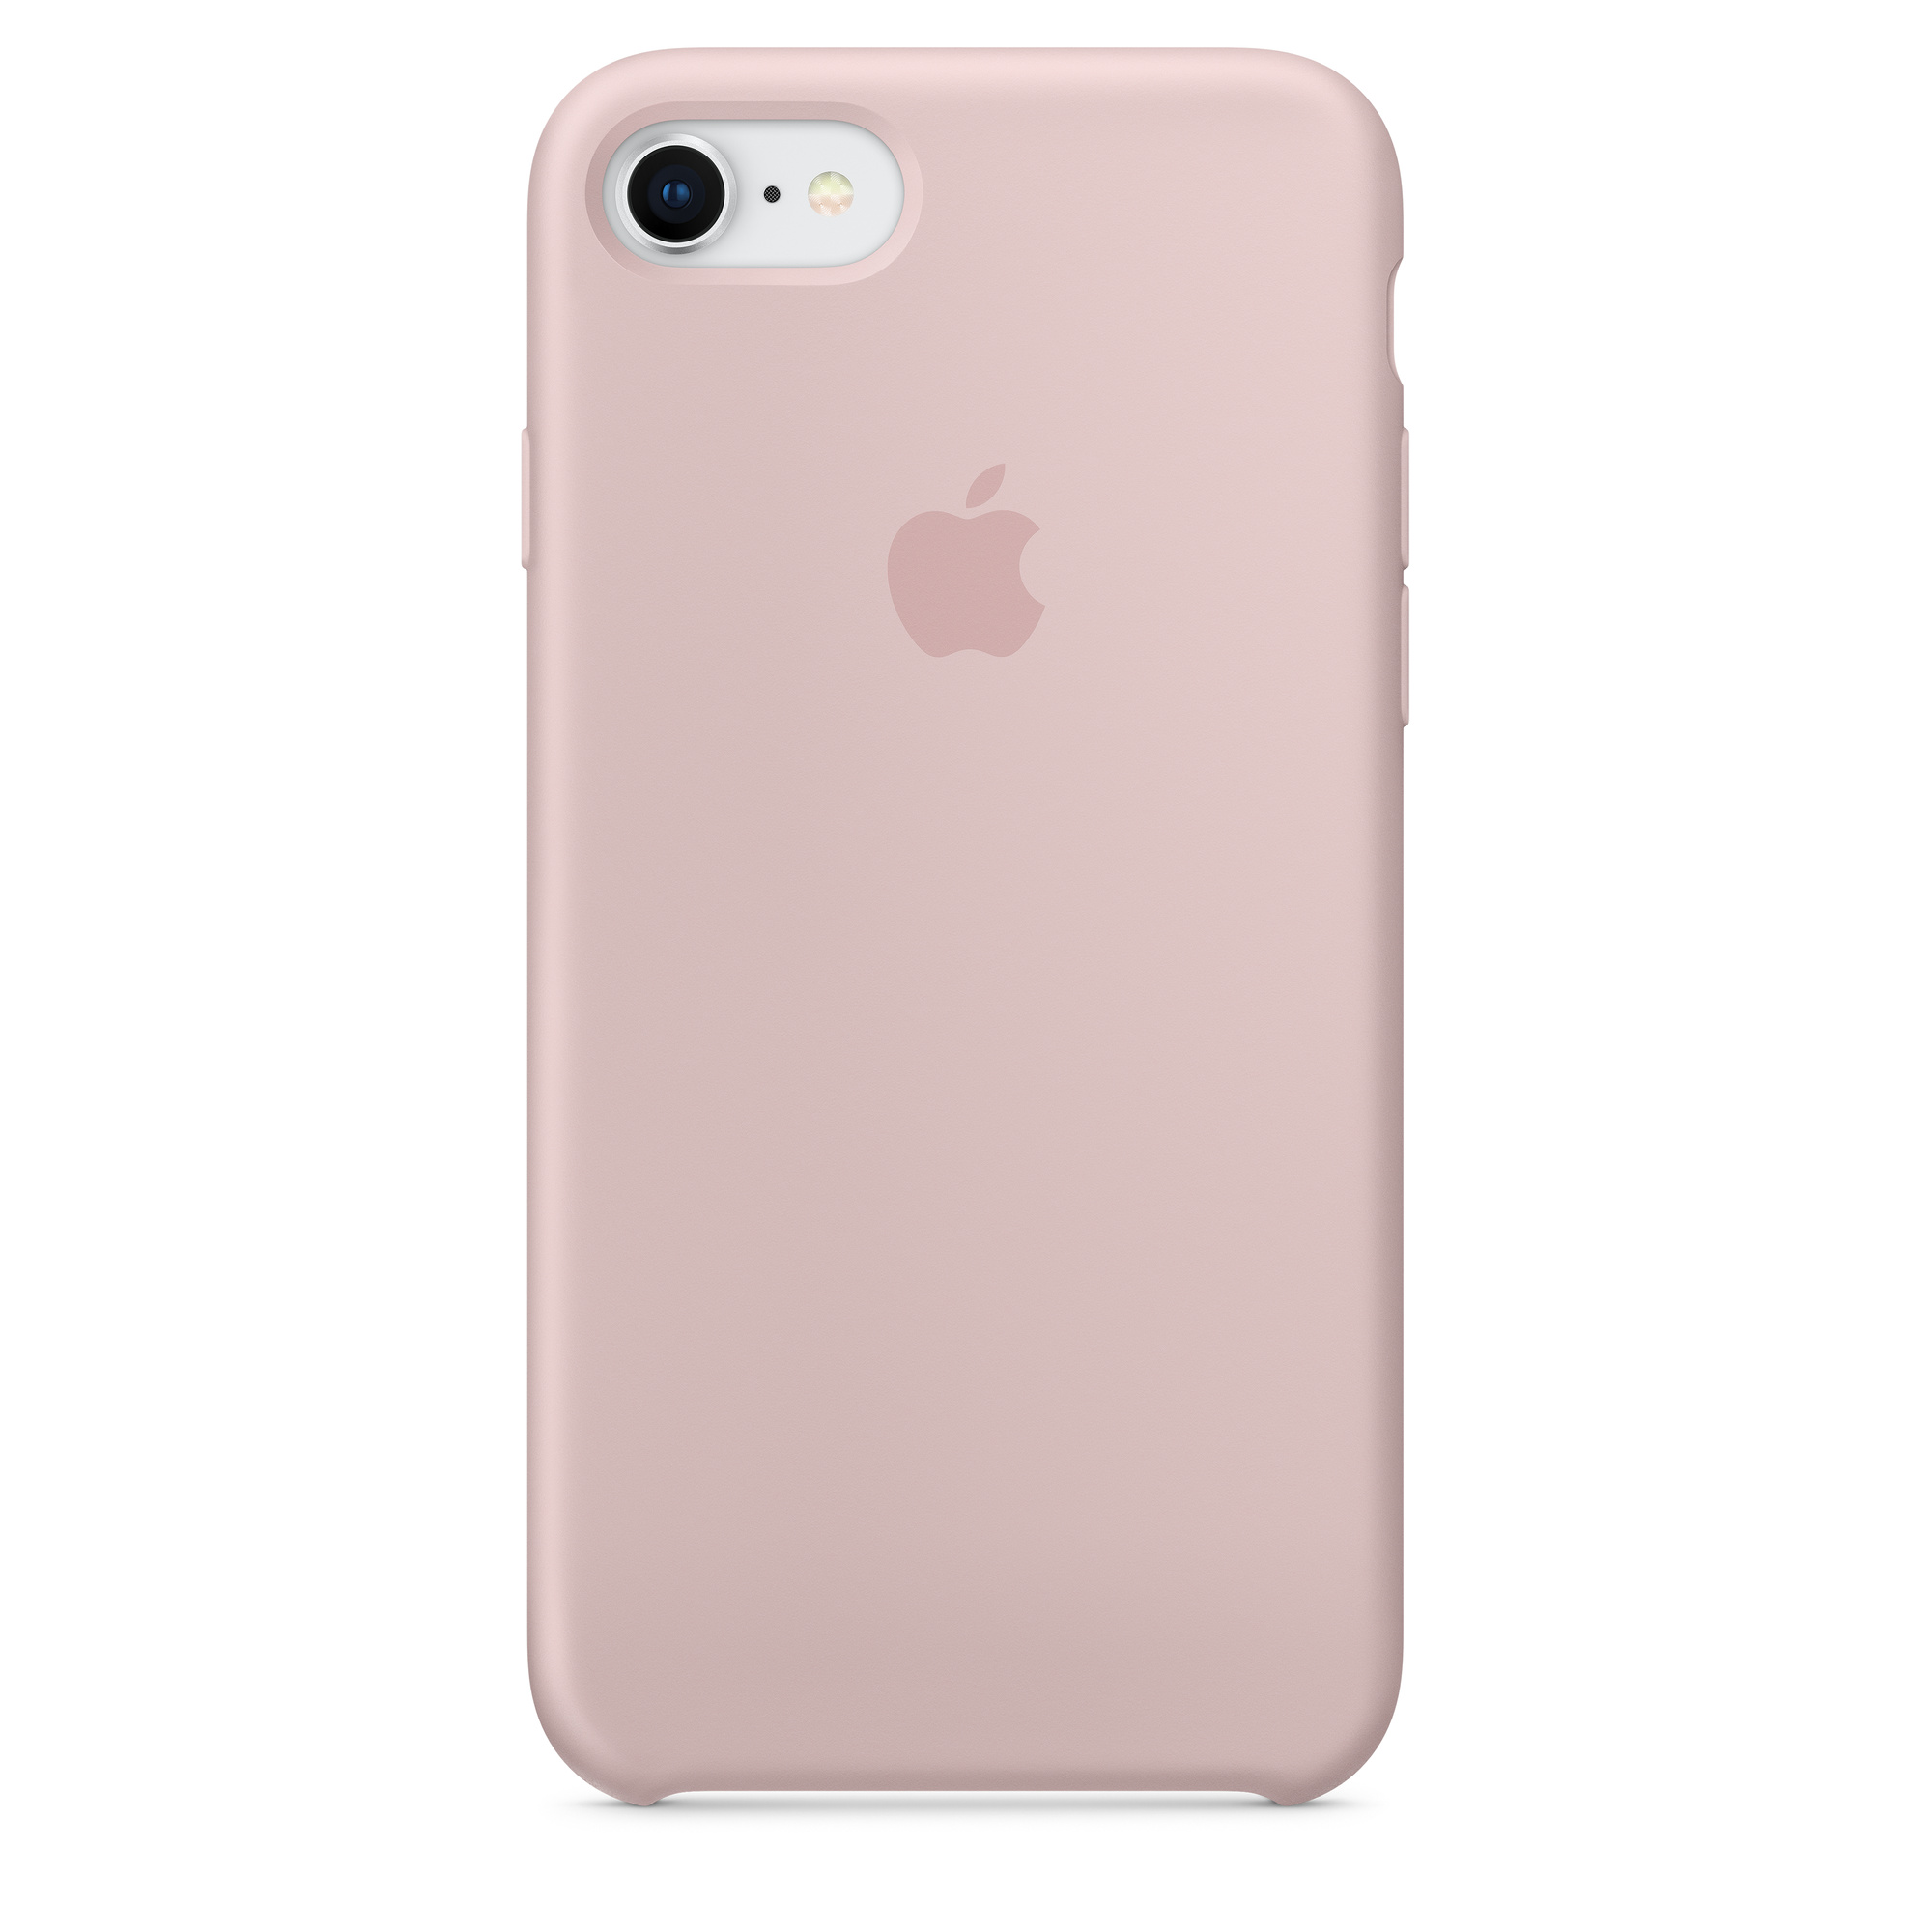 reputable site c42d6 c7de2 iPhone 8 / 7 Silicone Case - Pink Sand